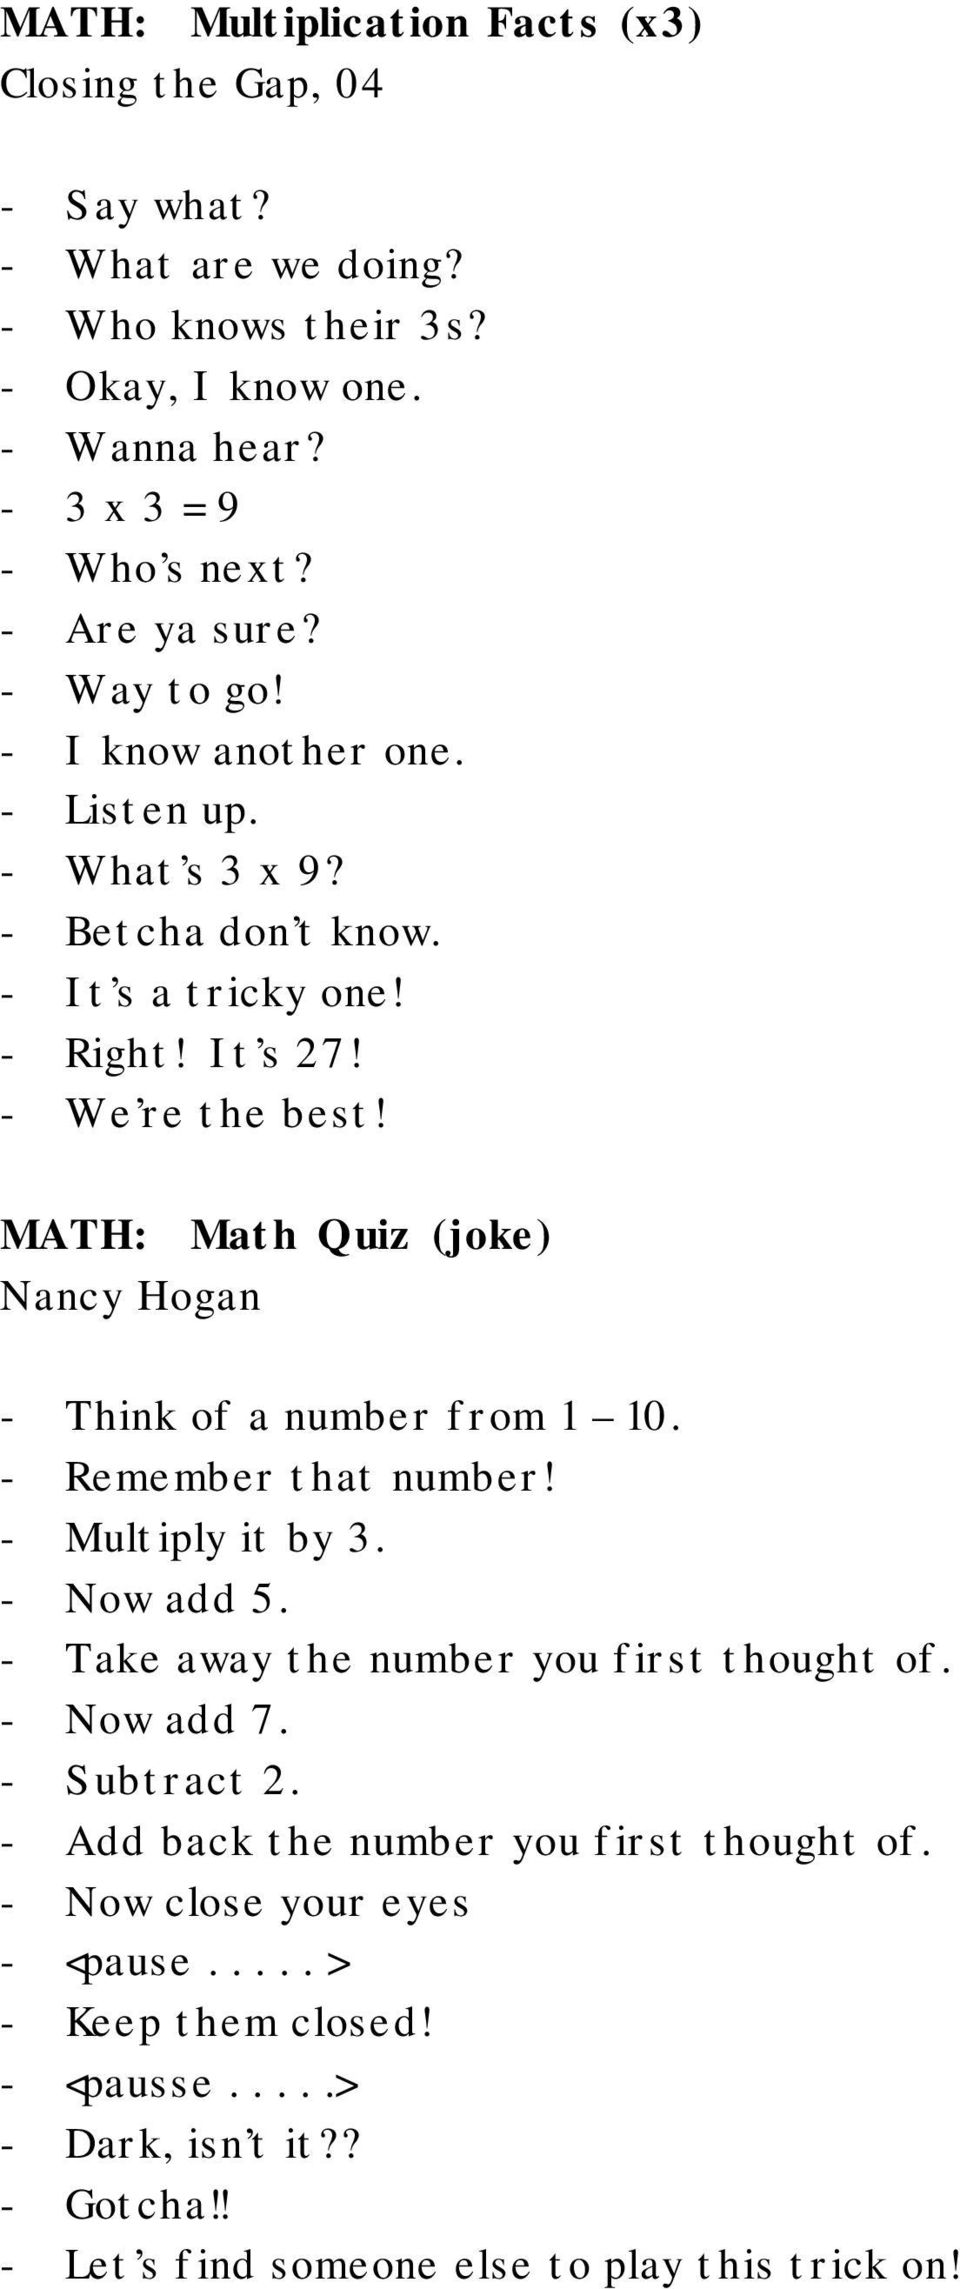 MATH: Math Quiz (joke) Nancy Hogan - Think of a number from 1 10. - Remember that number! - Multiply it by 3. - Now add 5. - Take away the number you first thought of.